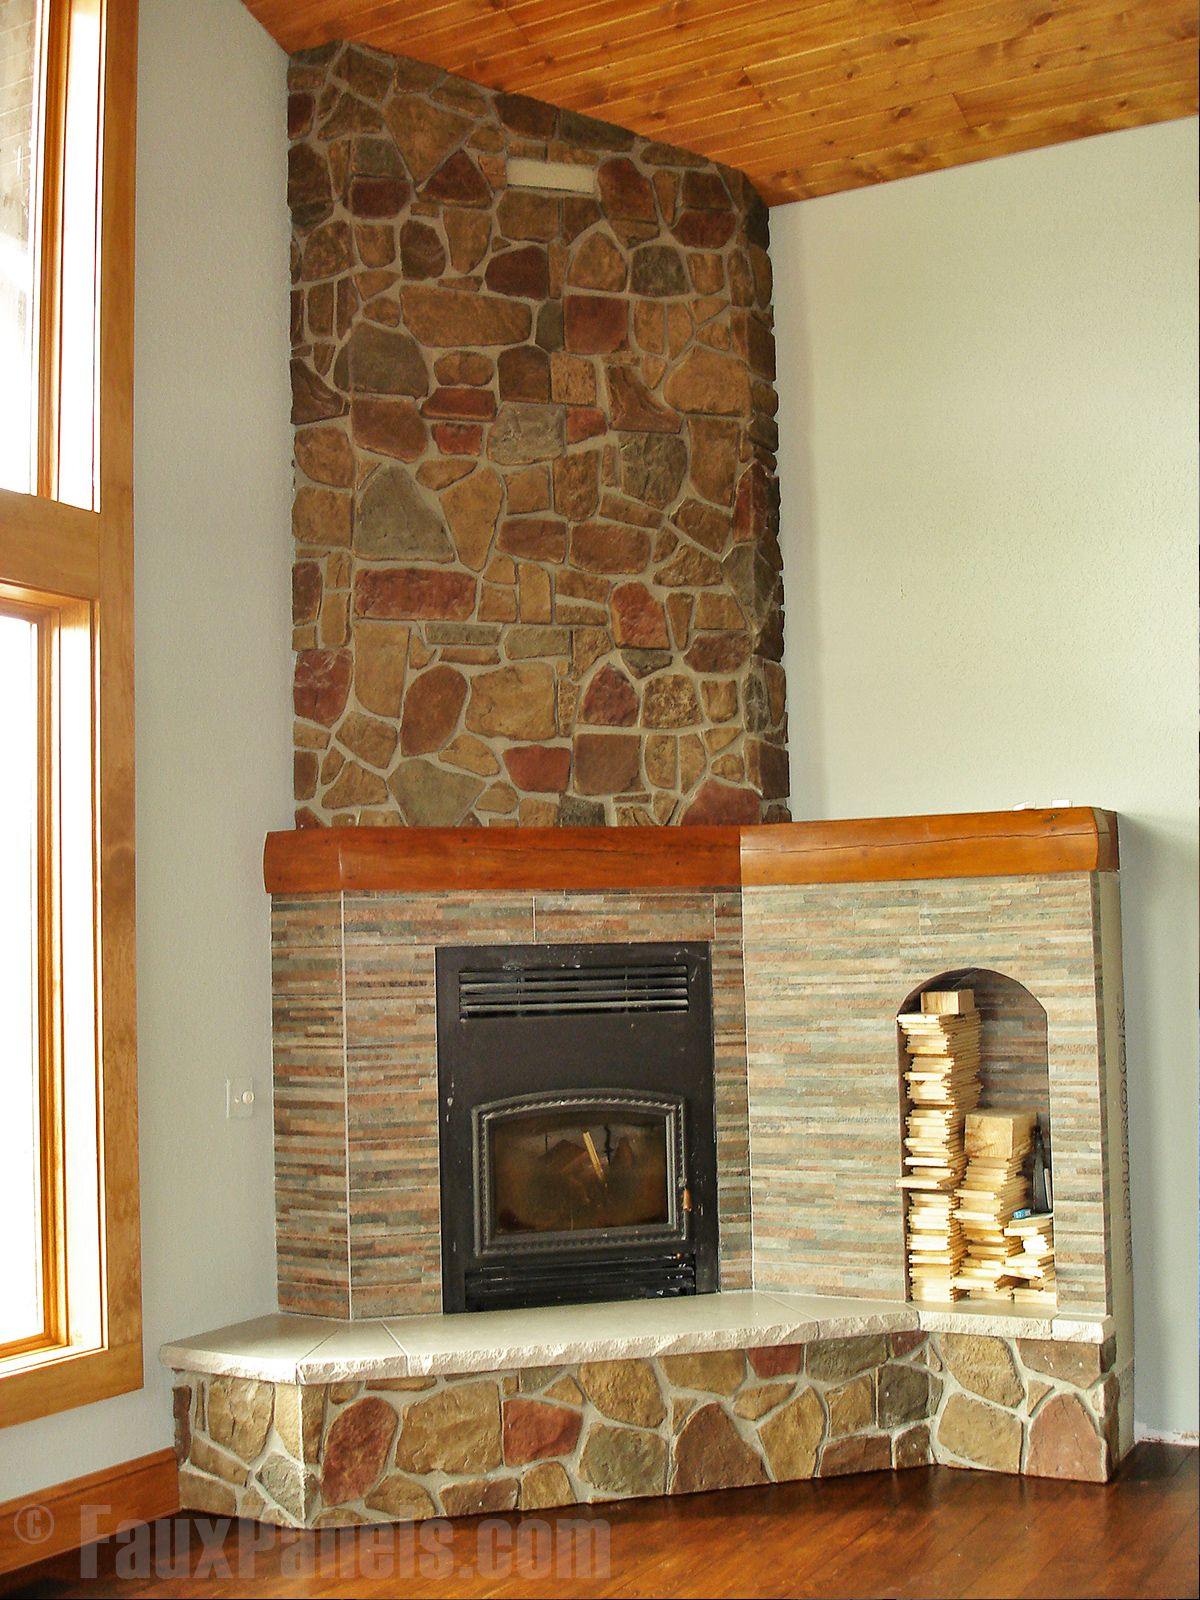 Favorite field stone fireplace designs the best fireplaces for